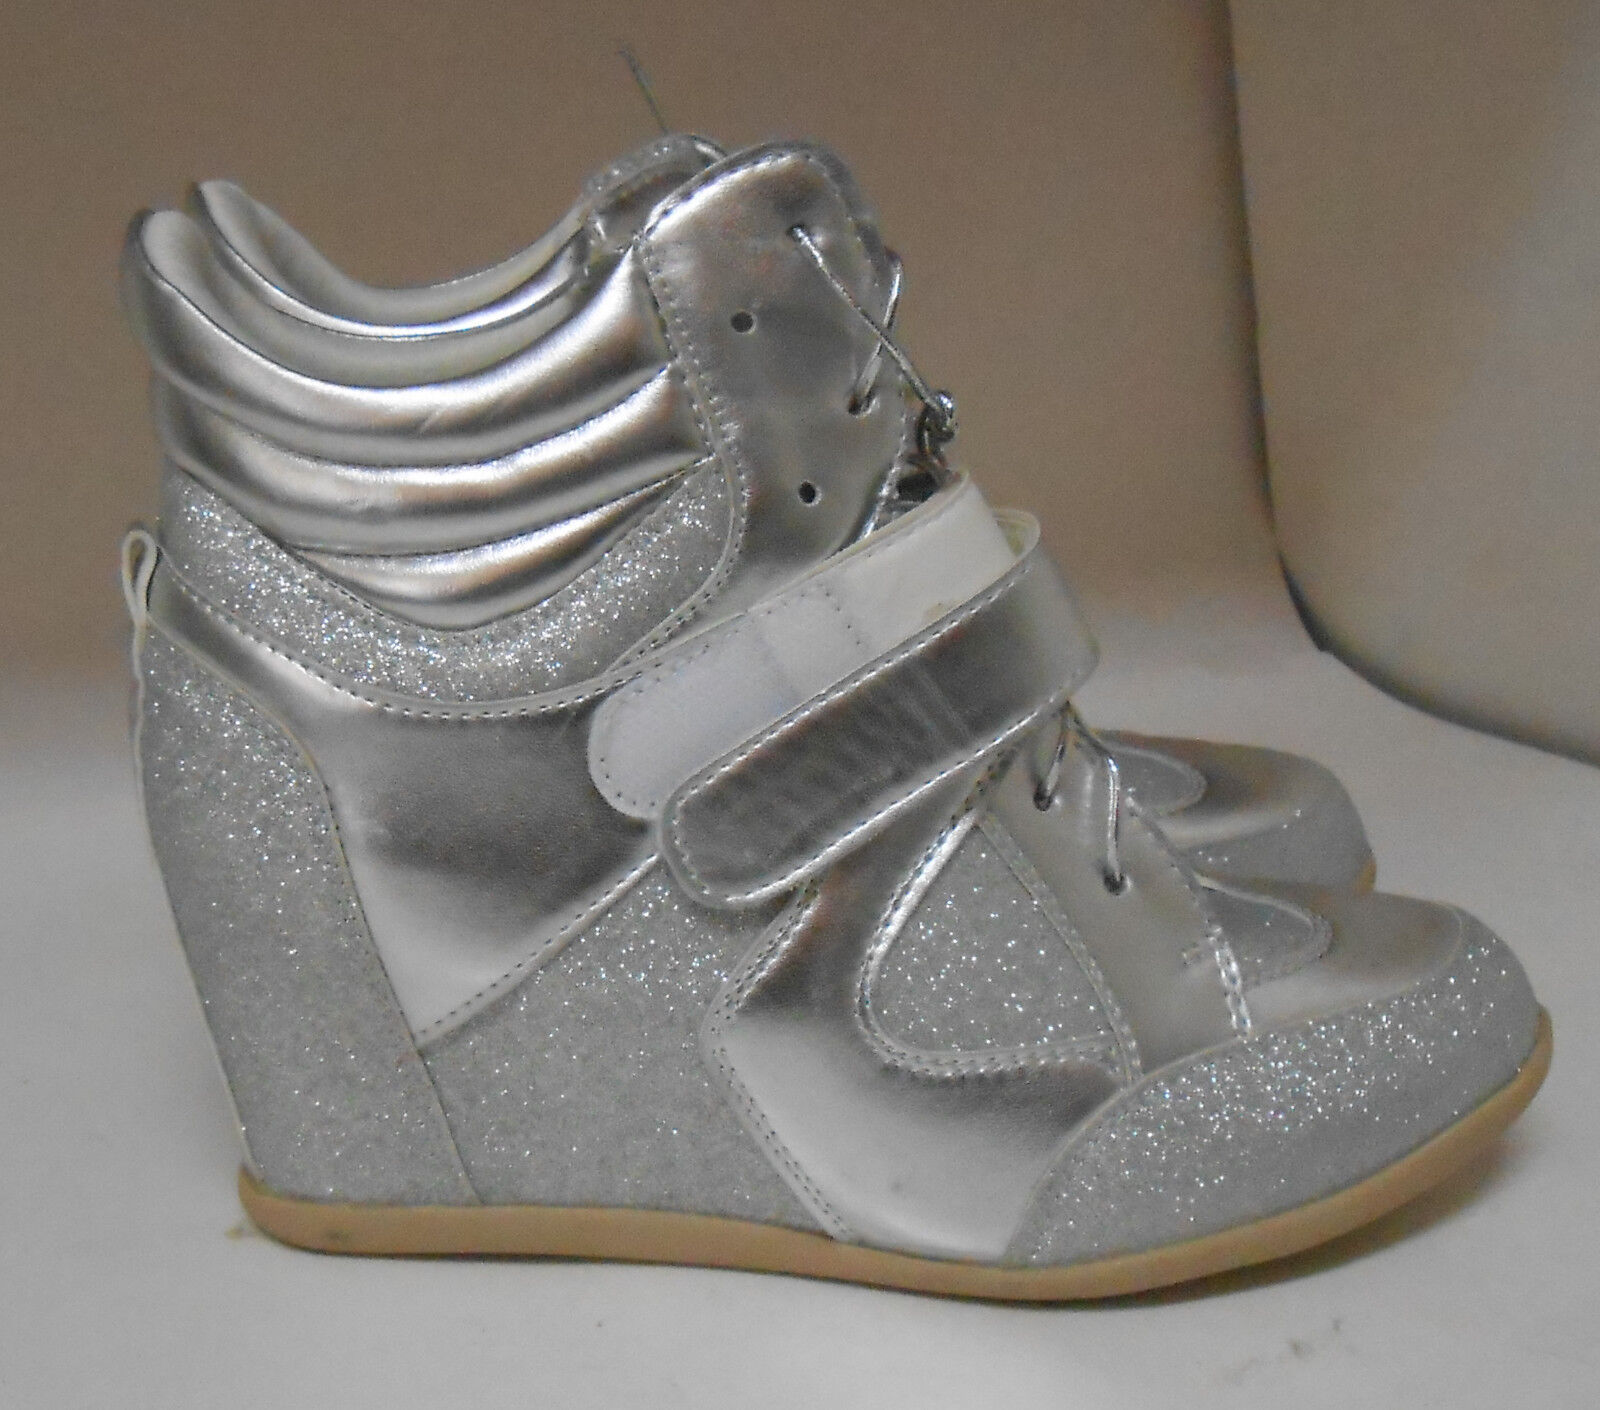 "new Silver 3""Wedge Heel Round Toe sexy Ankle Boots Front Strap Size 6.5"